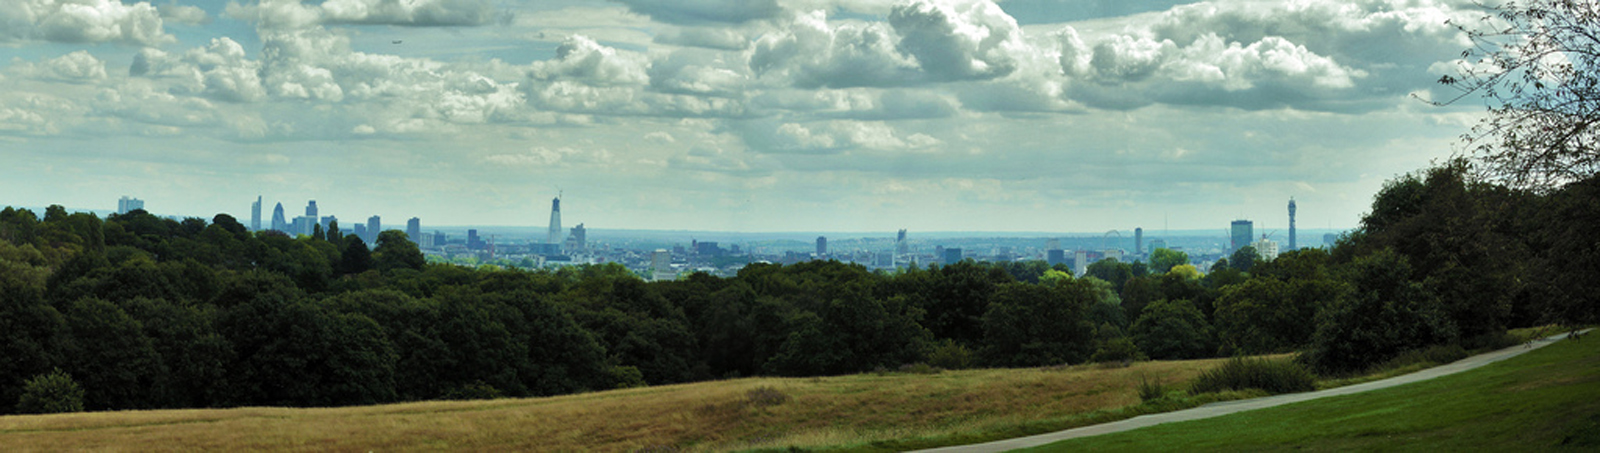 The view from Parliament Hill. London. England